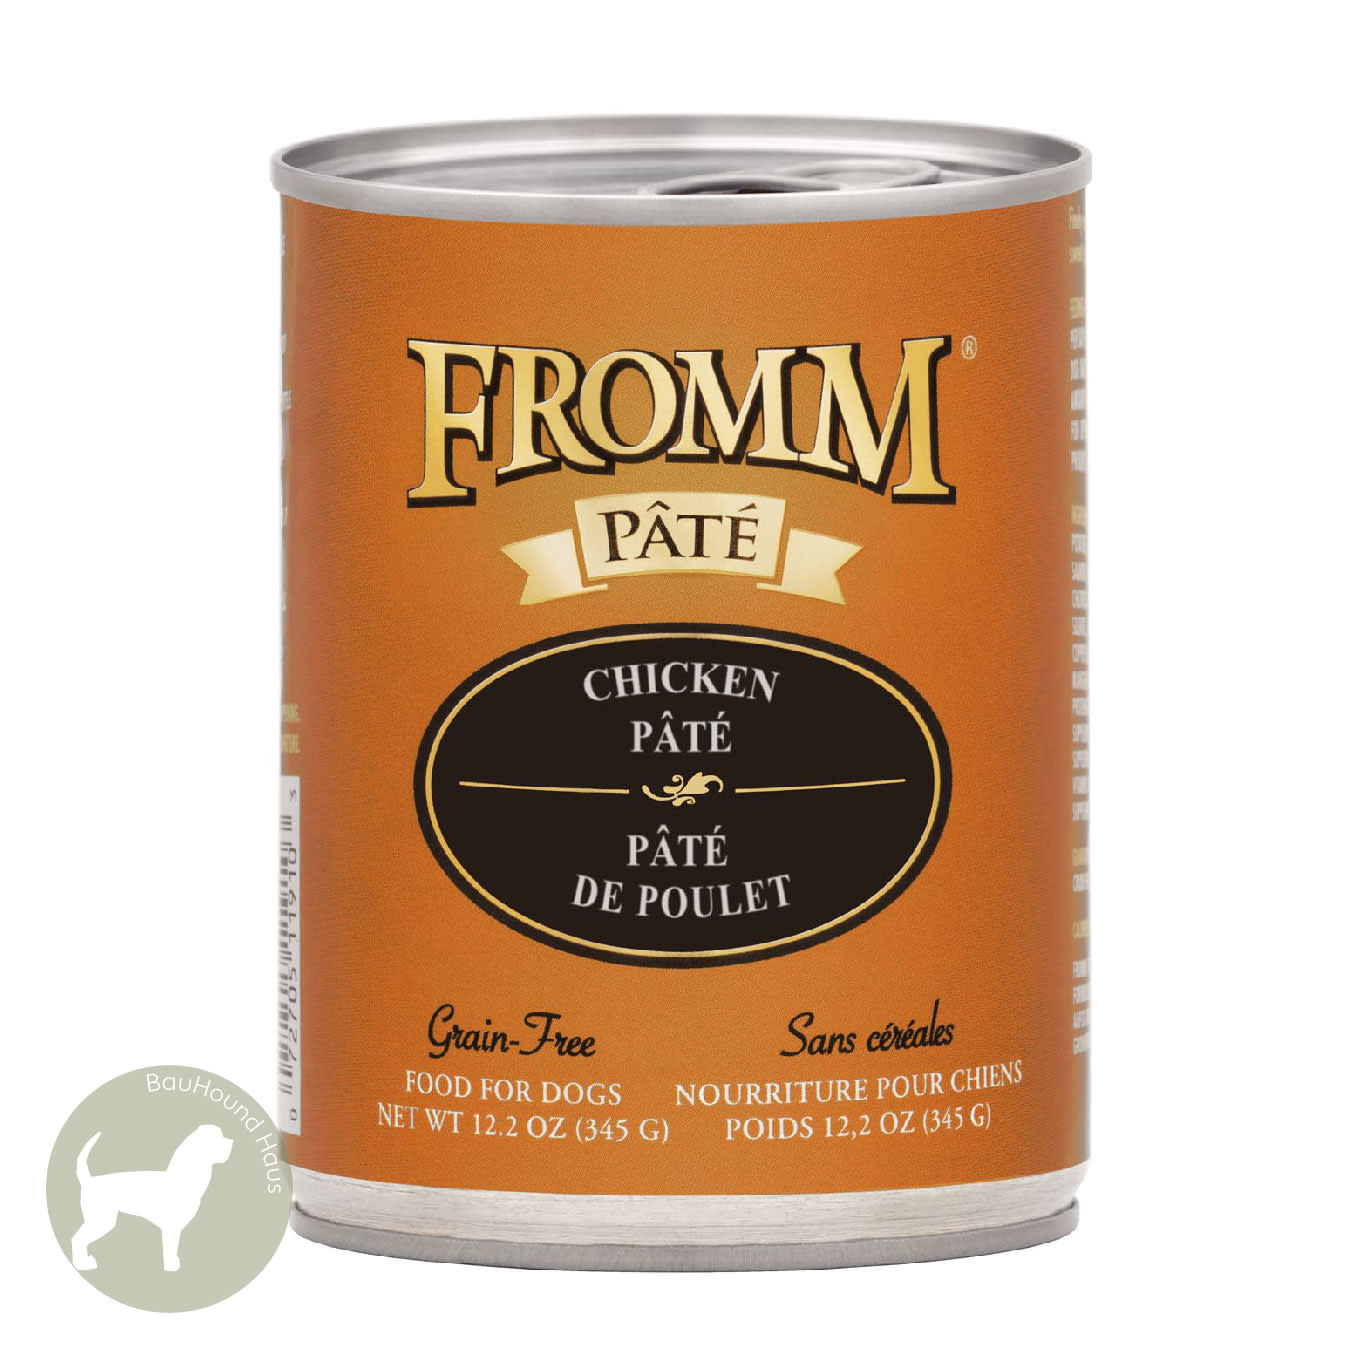 Fromm Fromm Chicken Pate Dog Can, 13oz